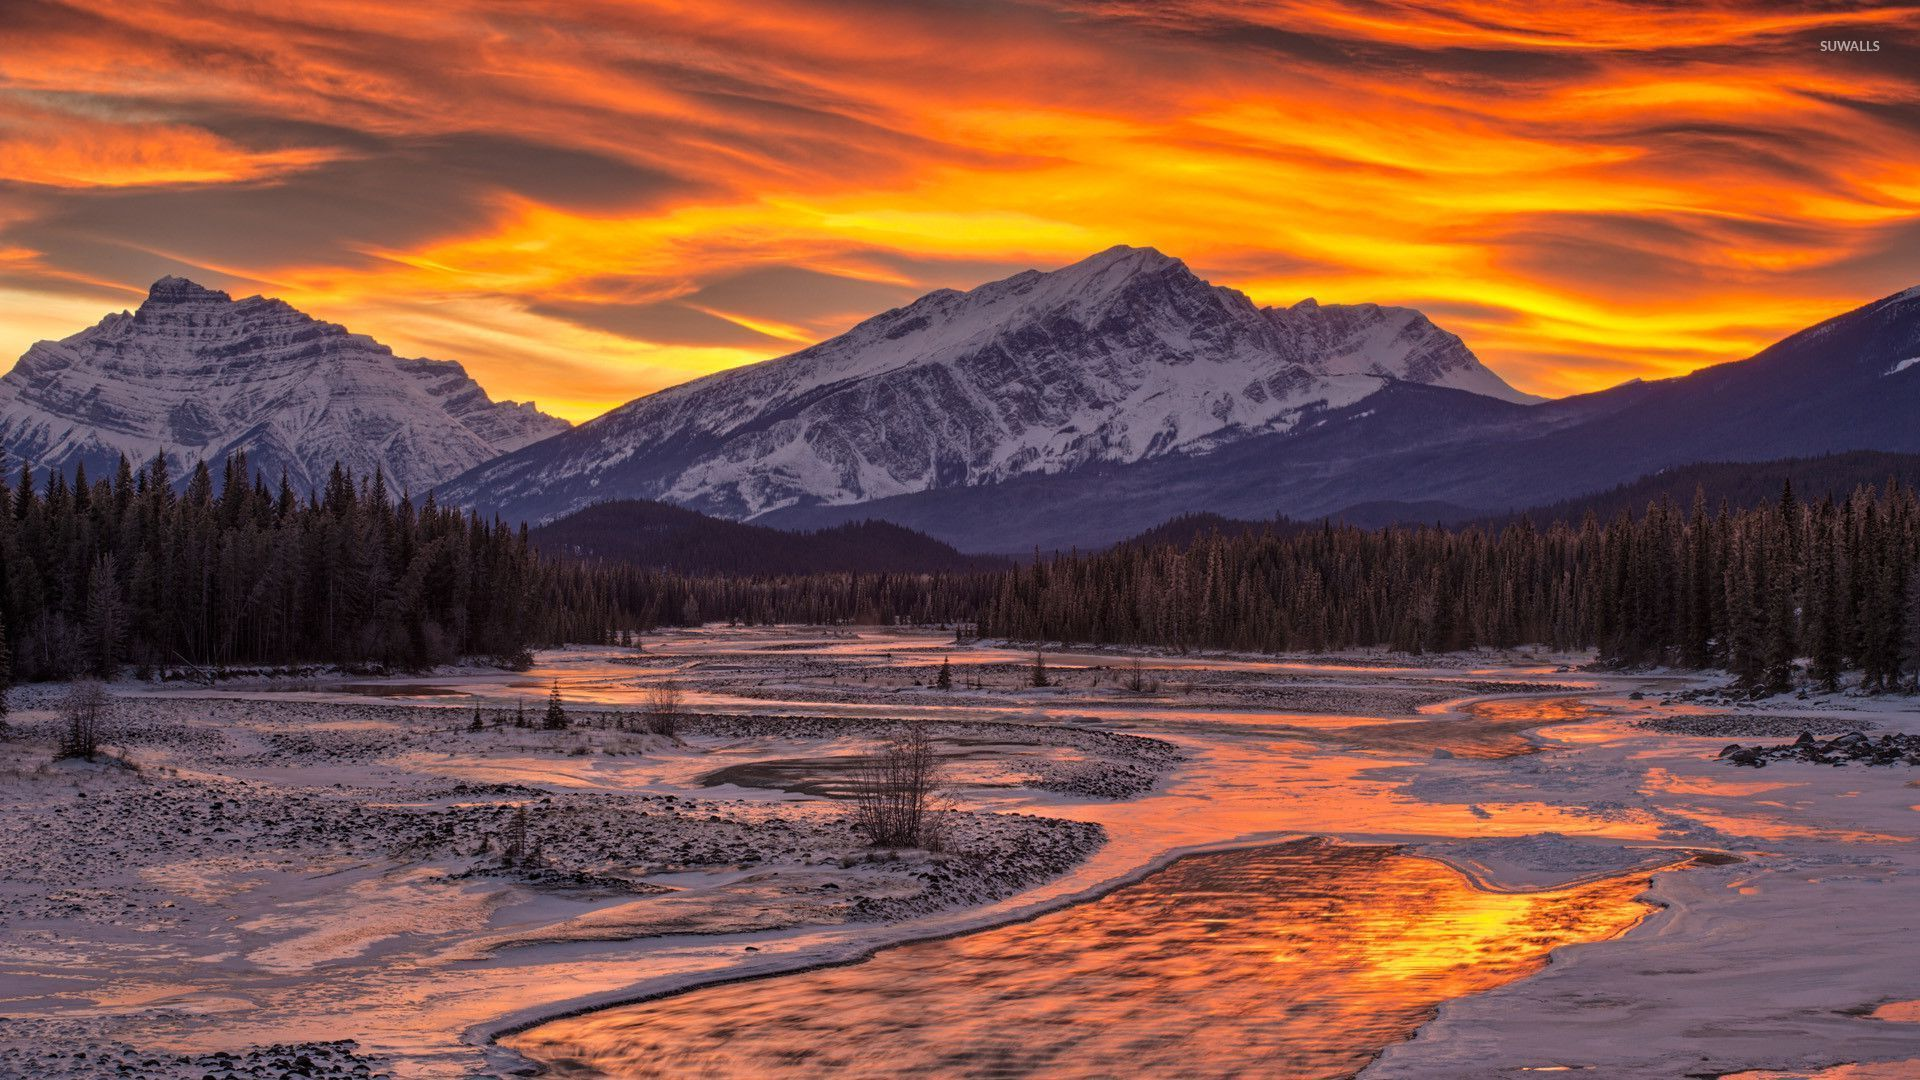 Cool Wallpaper Mountain Winter - winter-sunset-in-the-mountains-28729-1920x1080  Best Photo Reference_651046.jpg